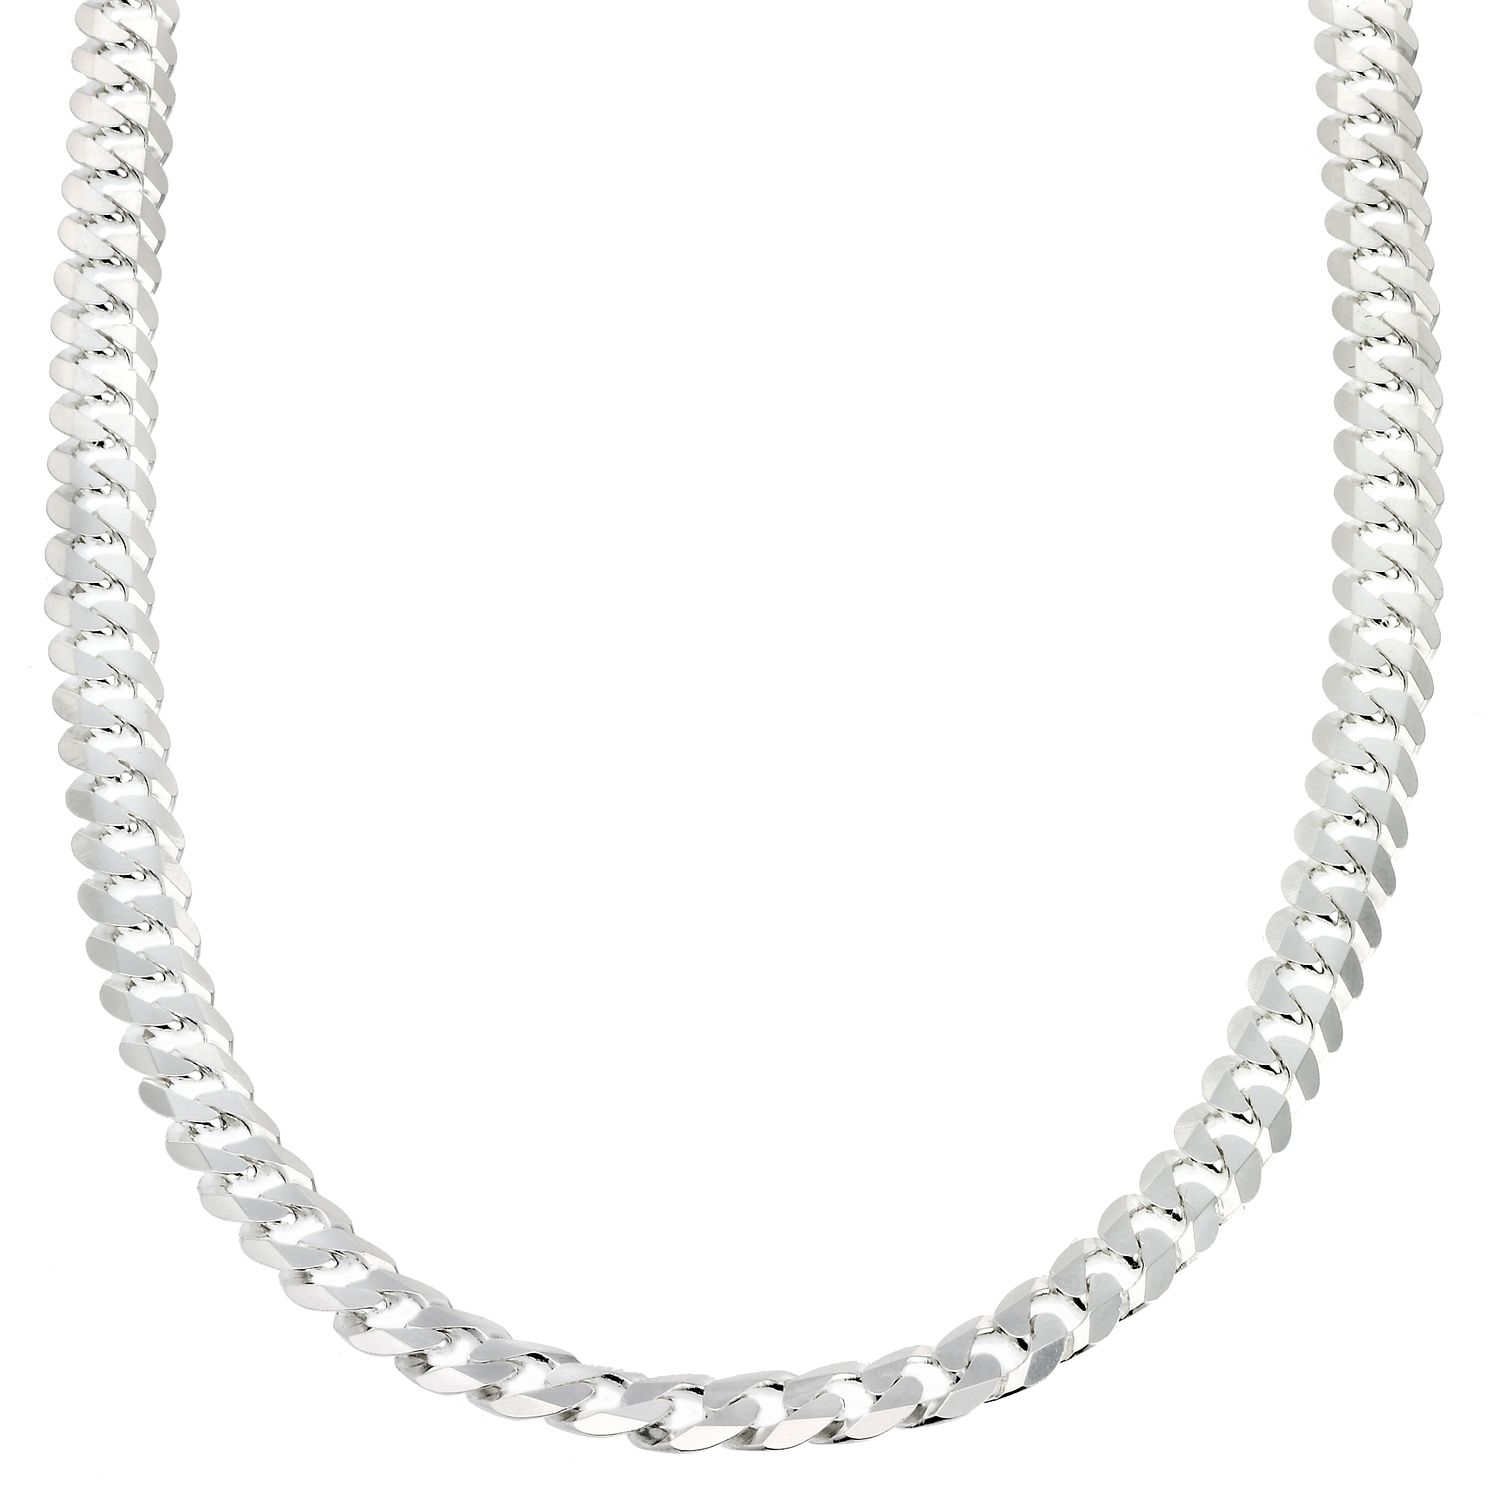 Sterling Silver Flat Curb Chain 20 inches - Product number 8153221